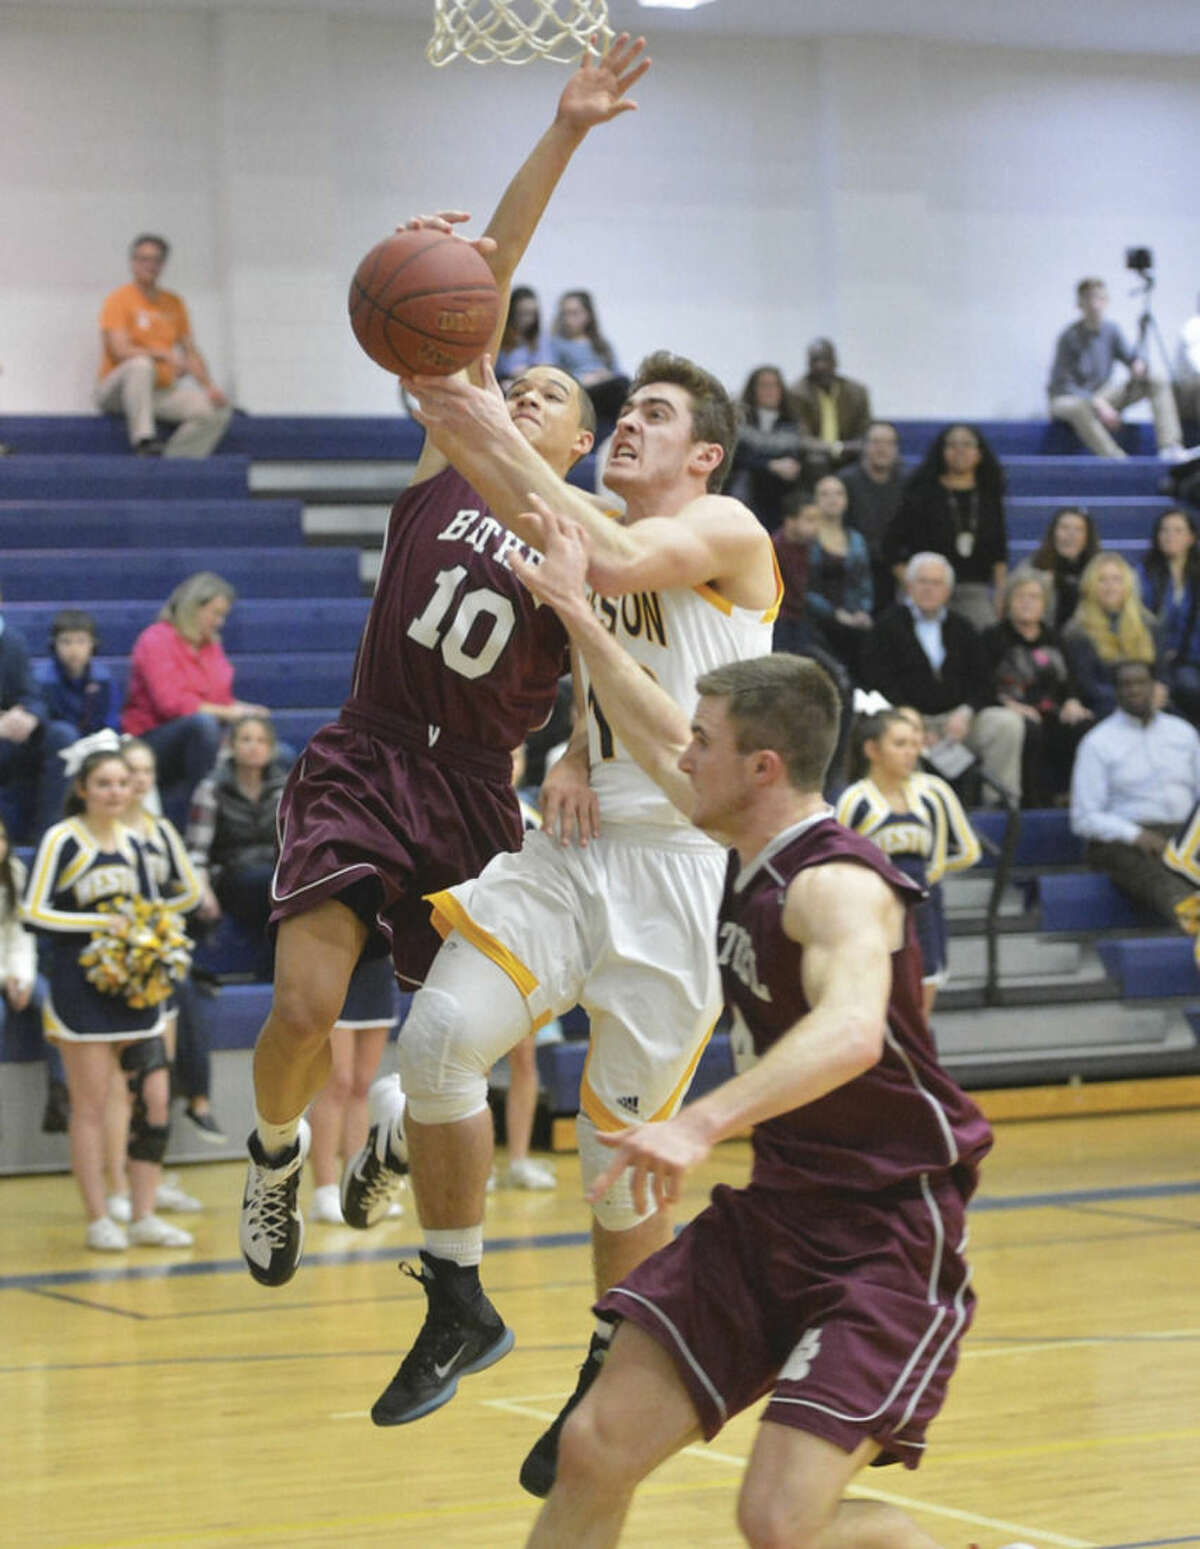 Weston's Jason Lawrence, center, tries to score between two Bethel defenders during Tuesday night's game at Weston High. The Trojans earned their second win of the season by defeating the Wildcats 49-39. Hour photo/ Alex von Kleydorff